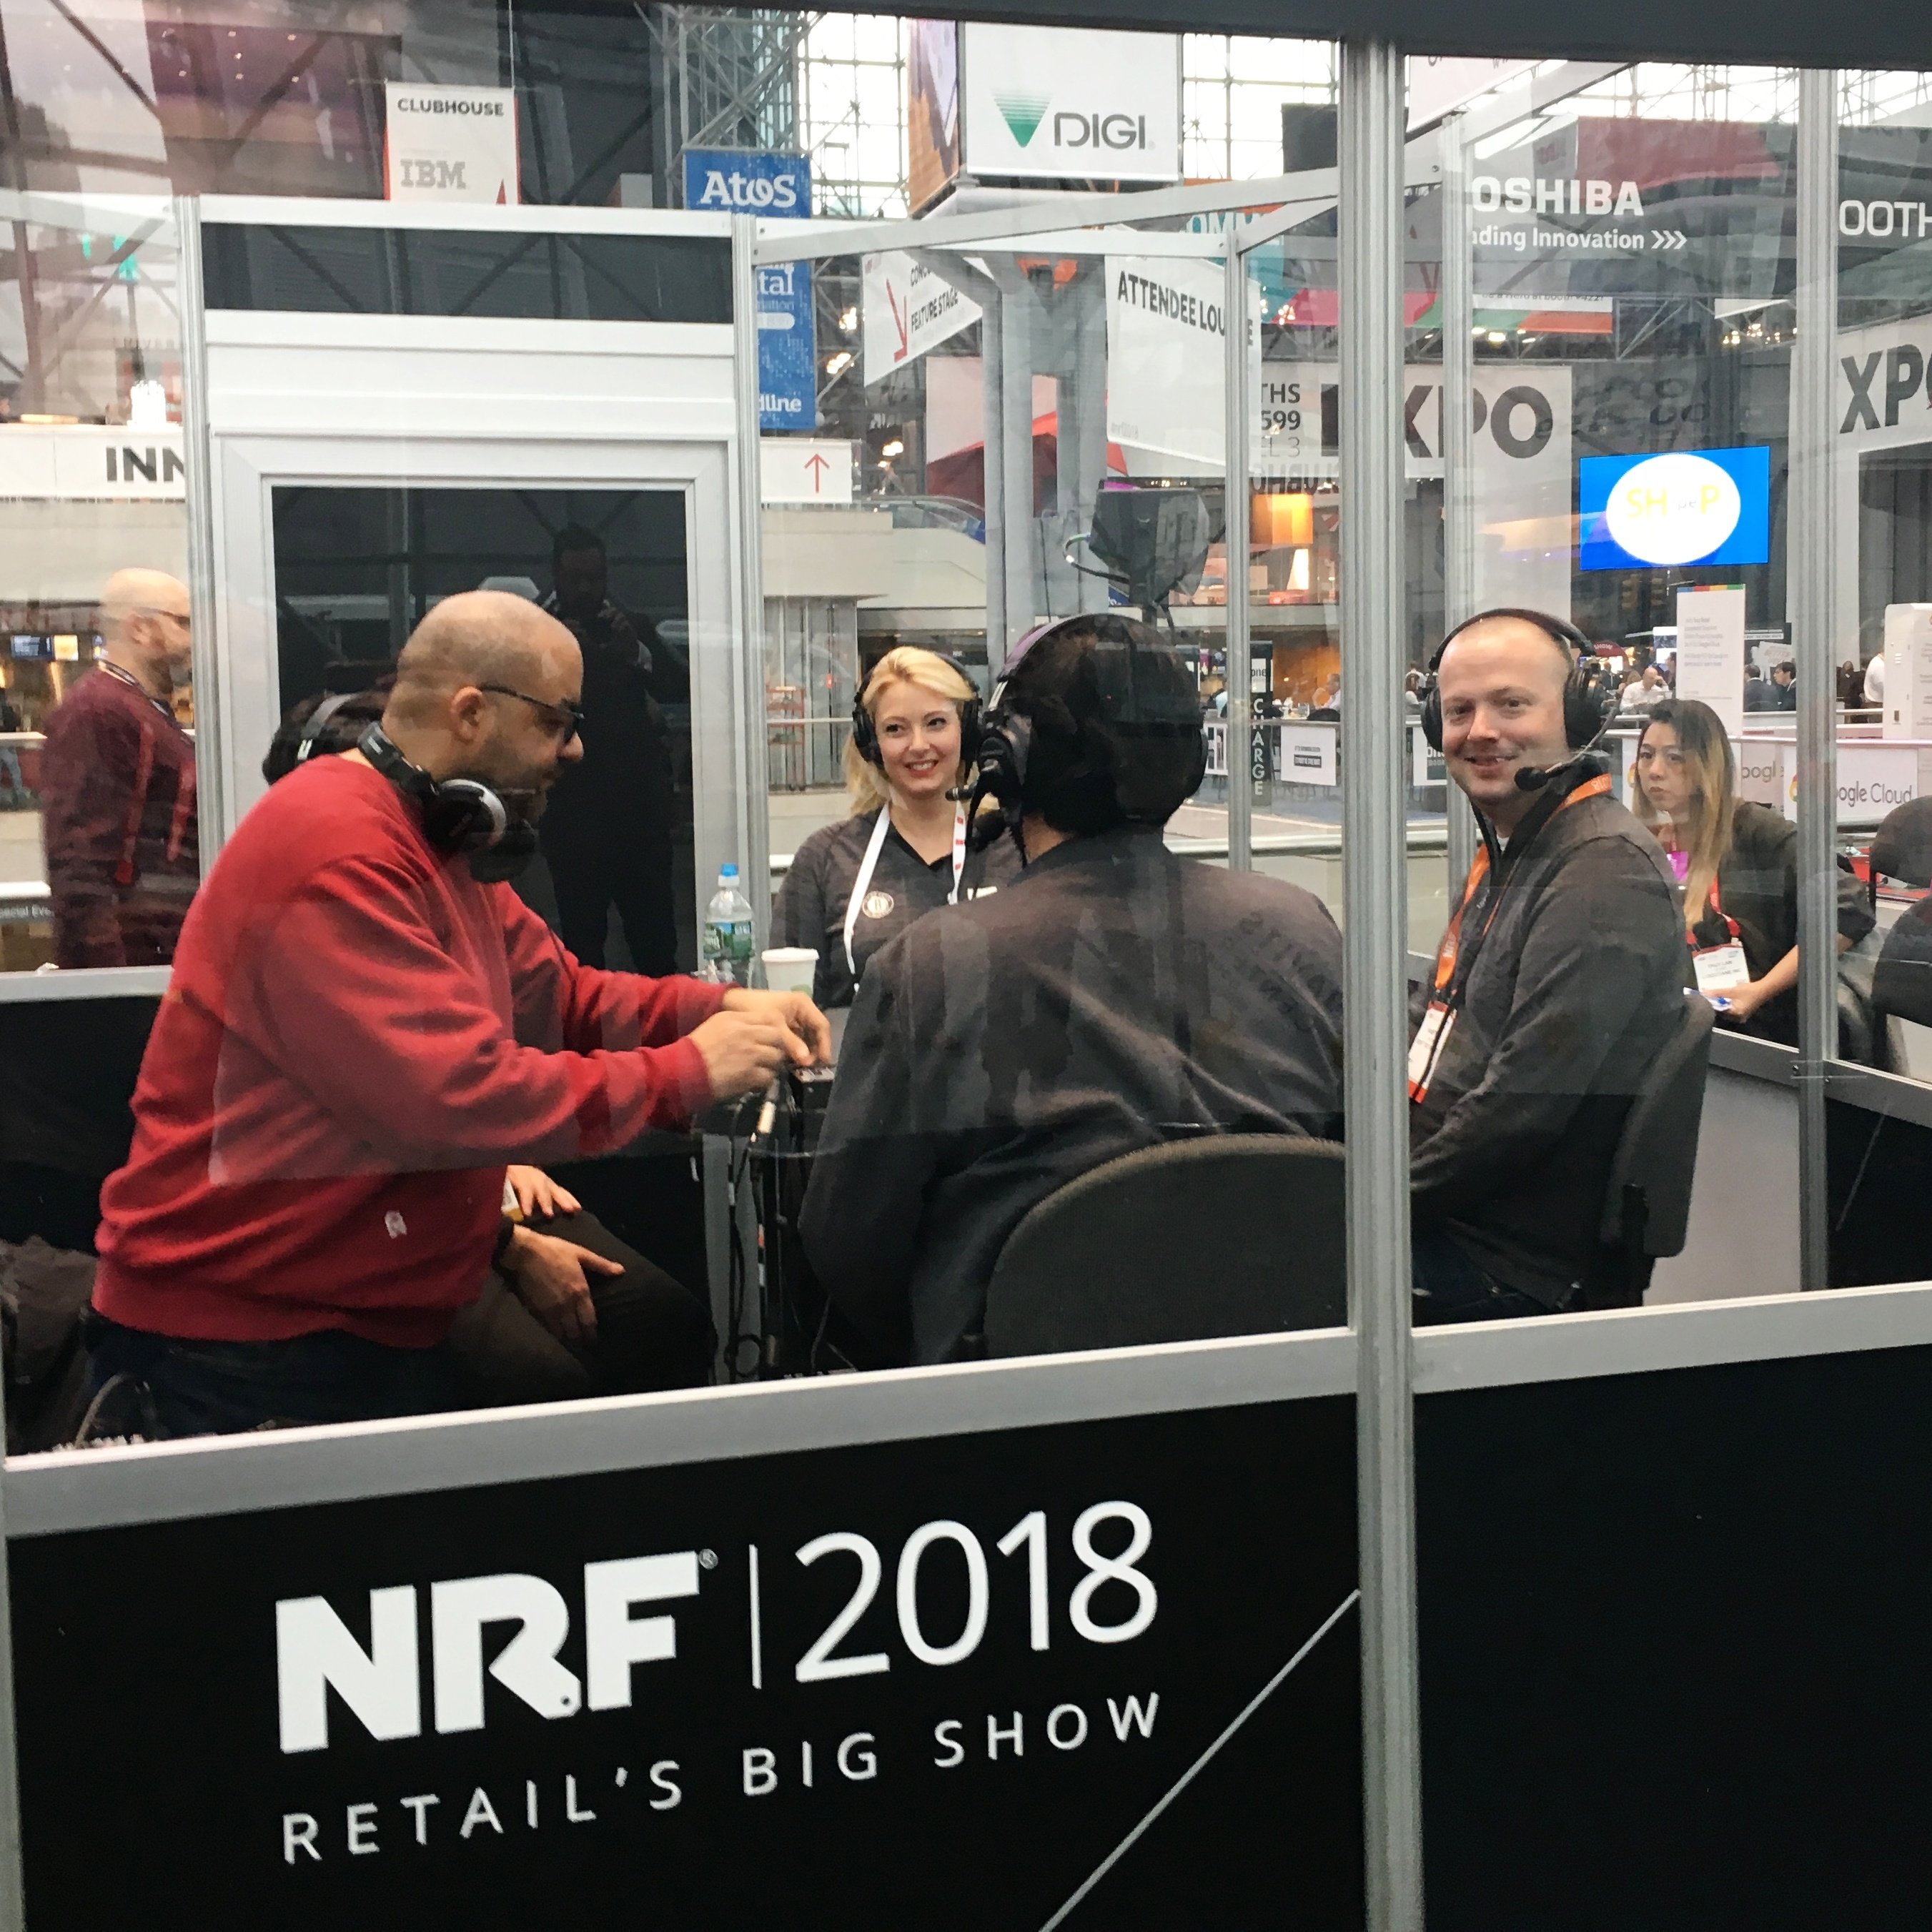 Hampton Catlin, Rent the Runway's senior director of engineering, participated in several NRF podcasts talking about the transformation of the in-store experience with technology.